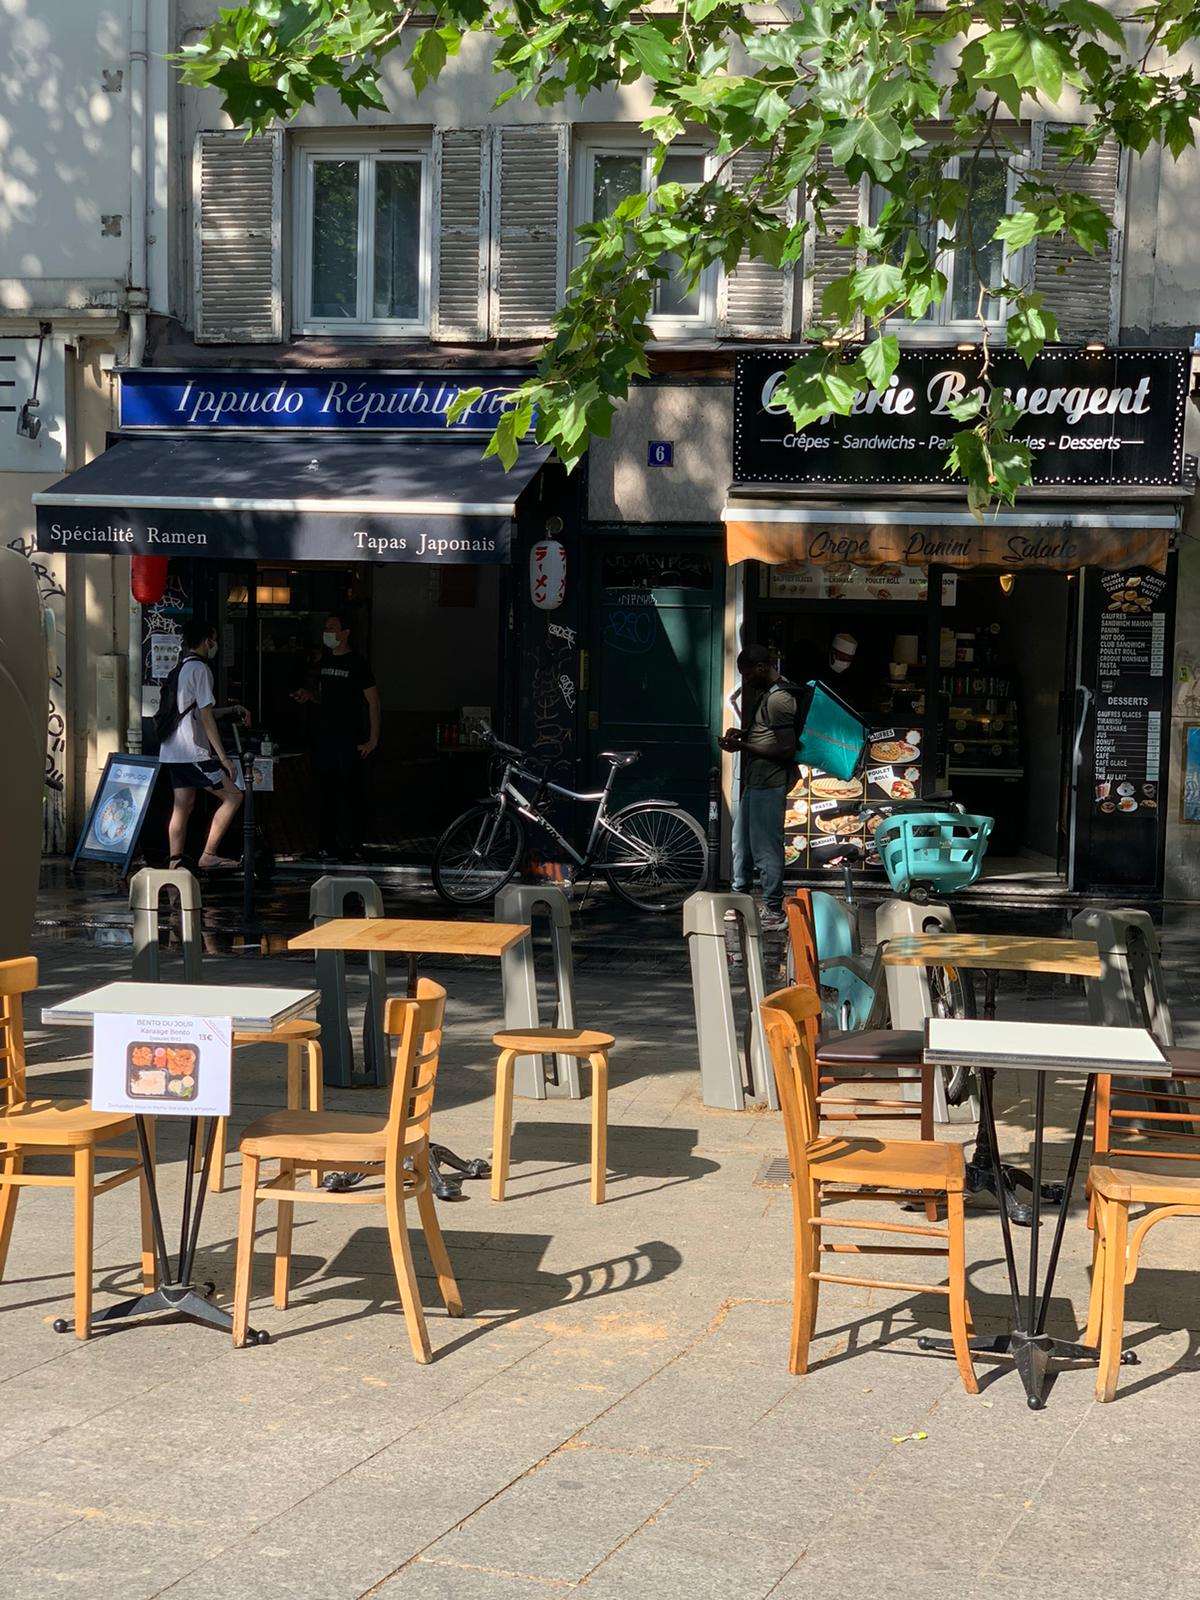 Terrasse Republique